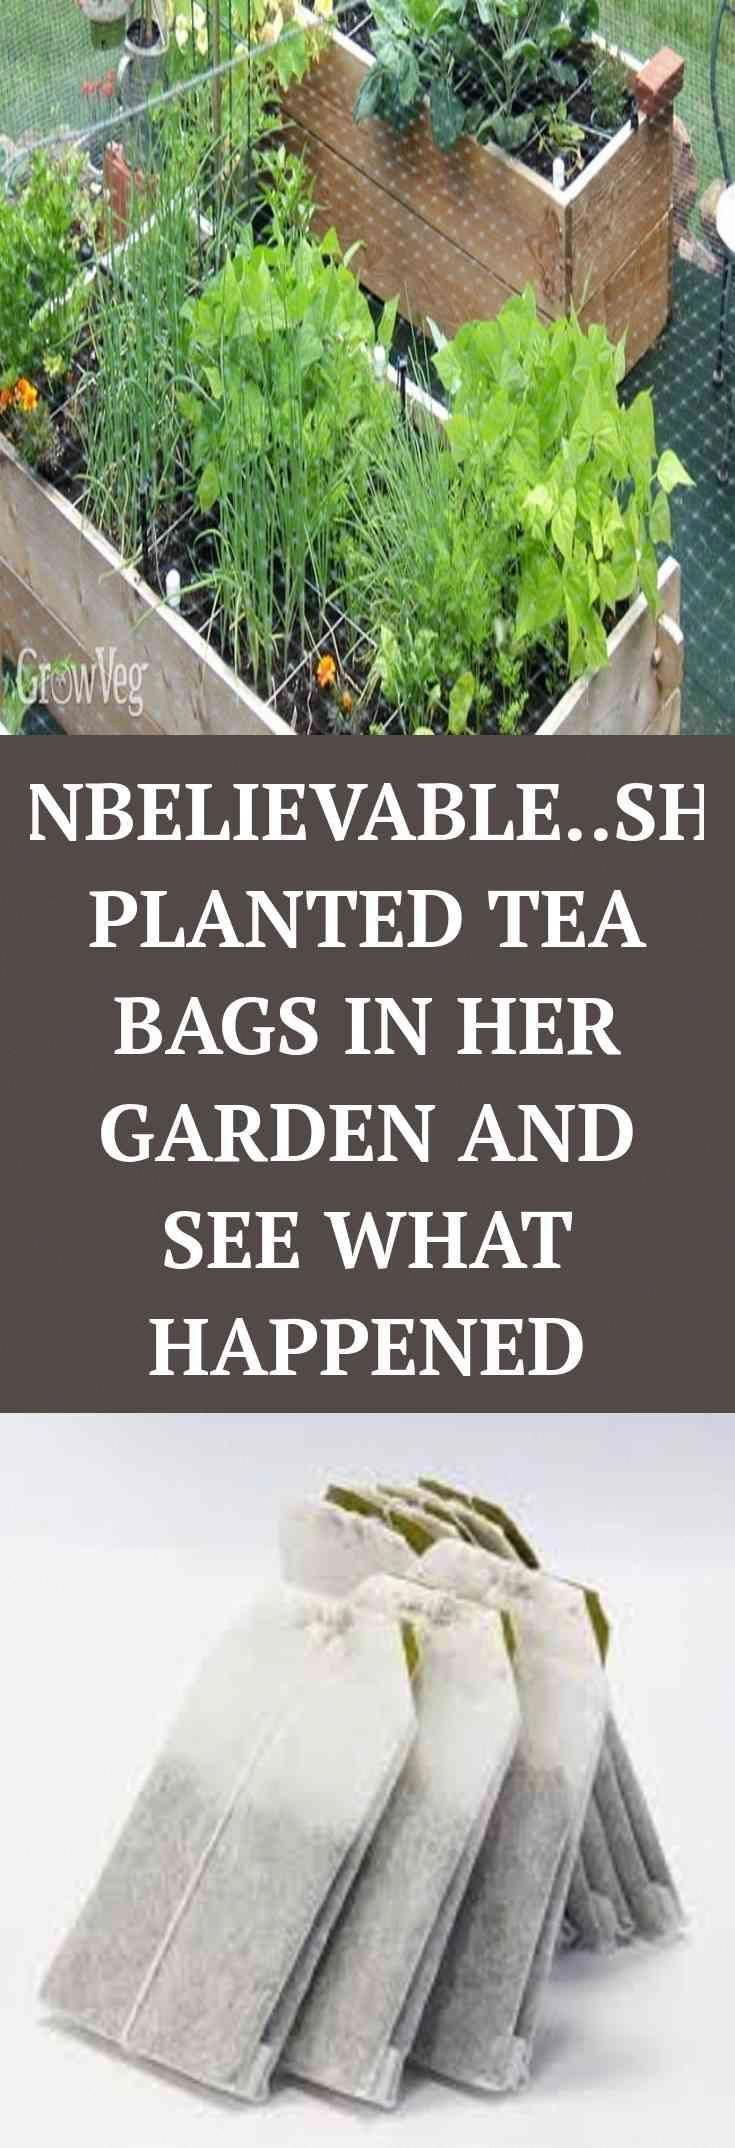 HAHA. Head to the webpage to read more on SHE PLANTED THESE TEA BAGS IN HER GARDEN This is how.  boo...